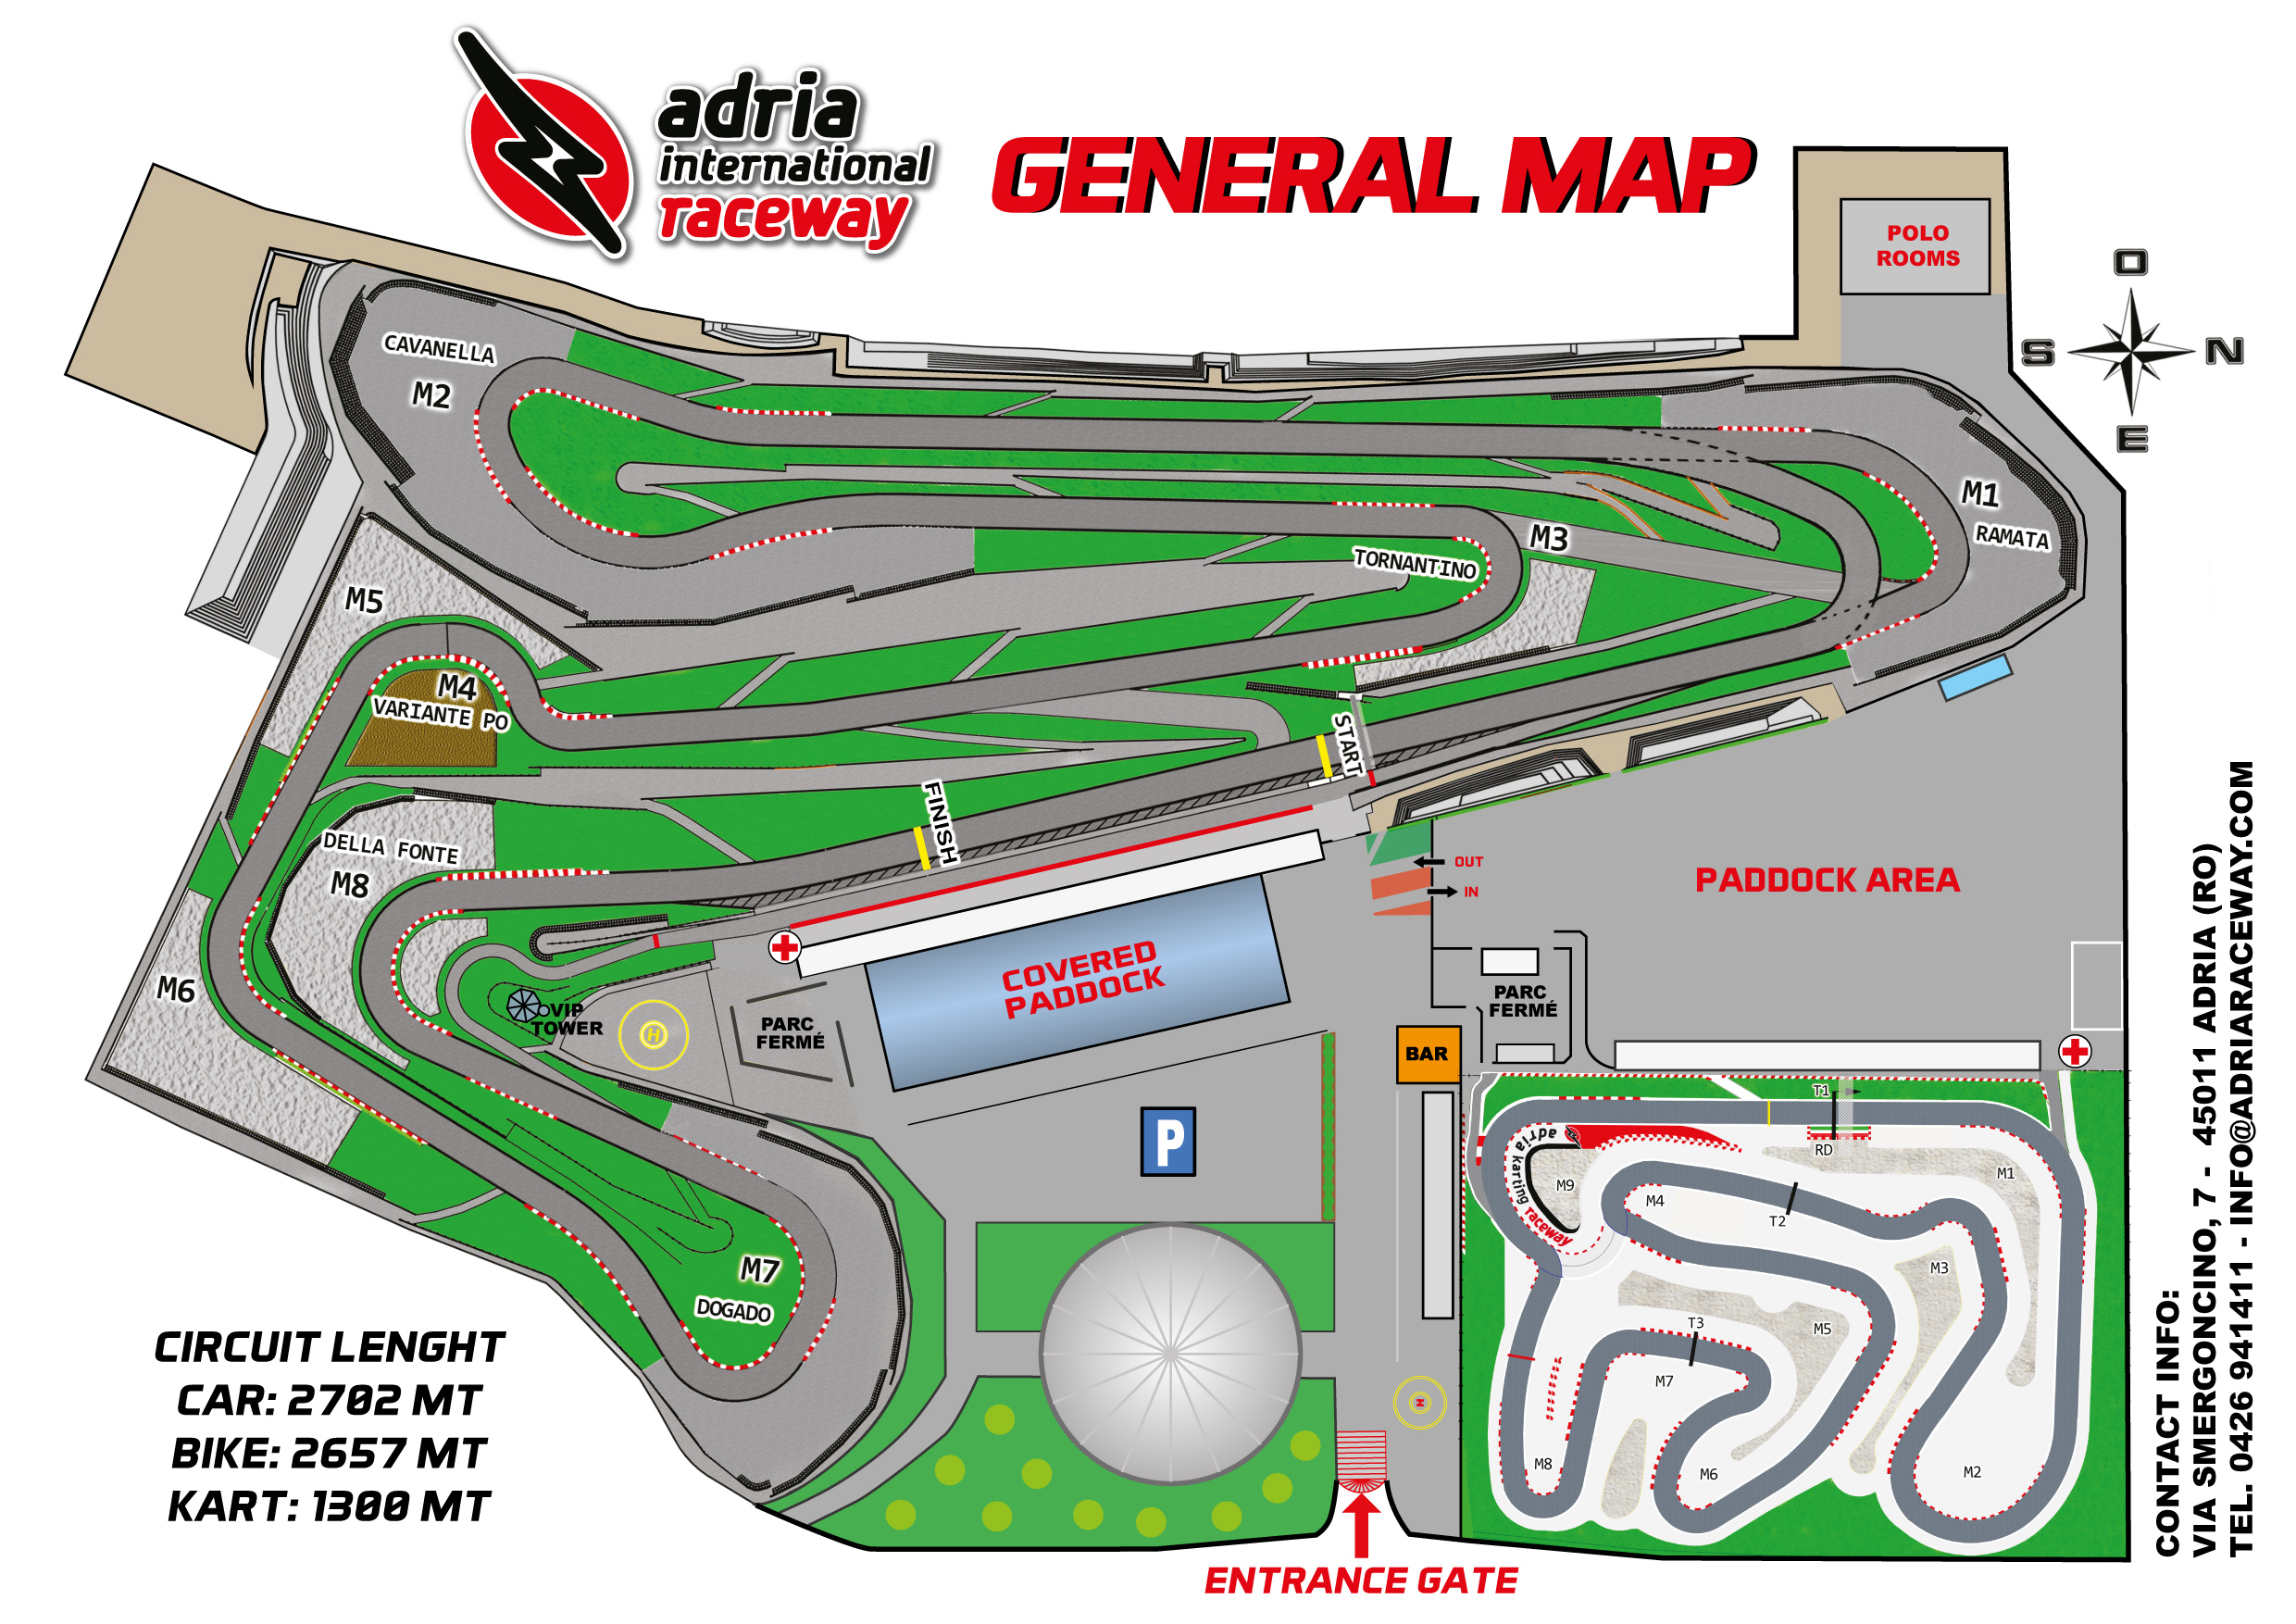 Adria international raceway map tracciato